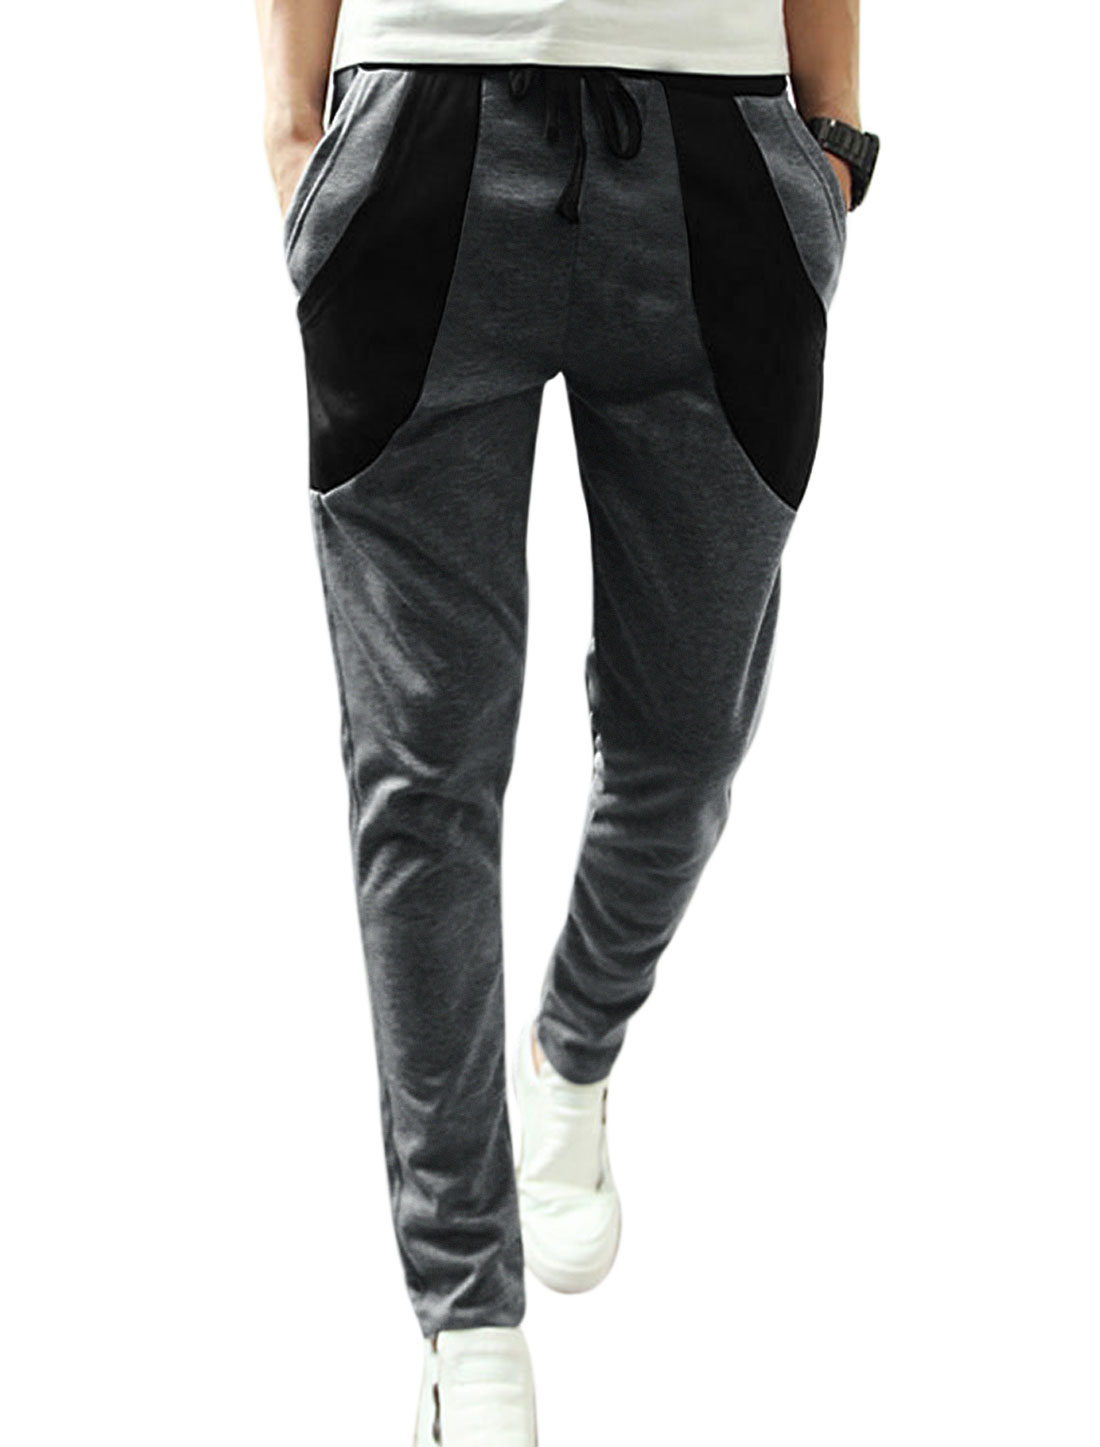 Men Drawstring Contrast Color Pockets Panel Casual Pants Dark Gray W30